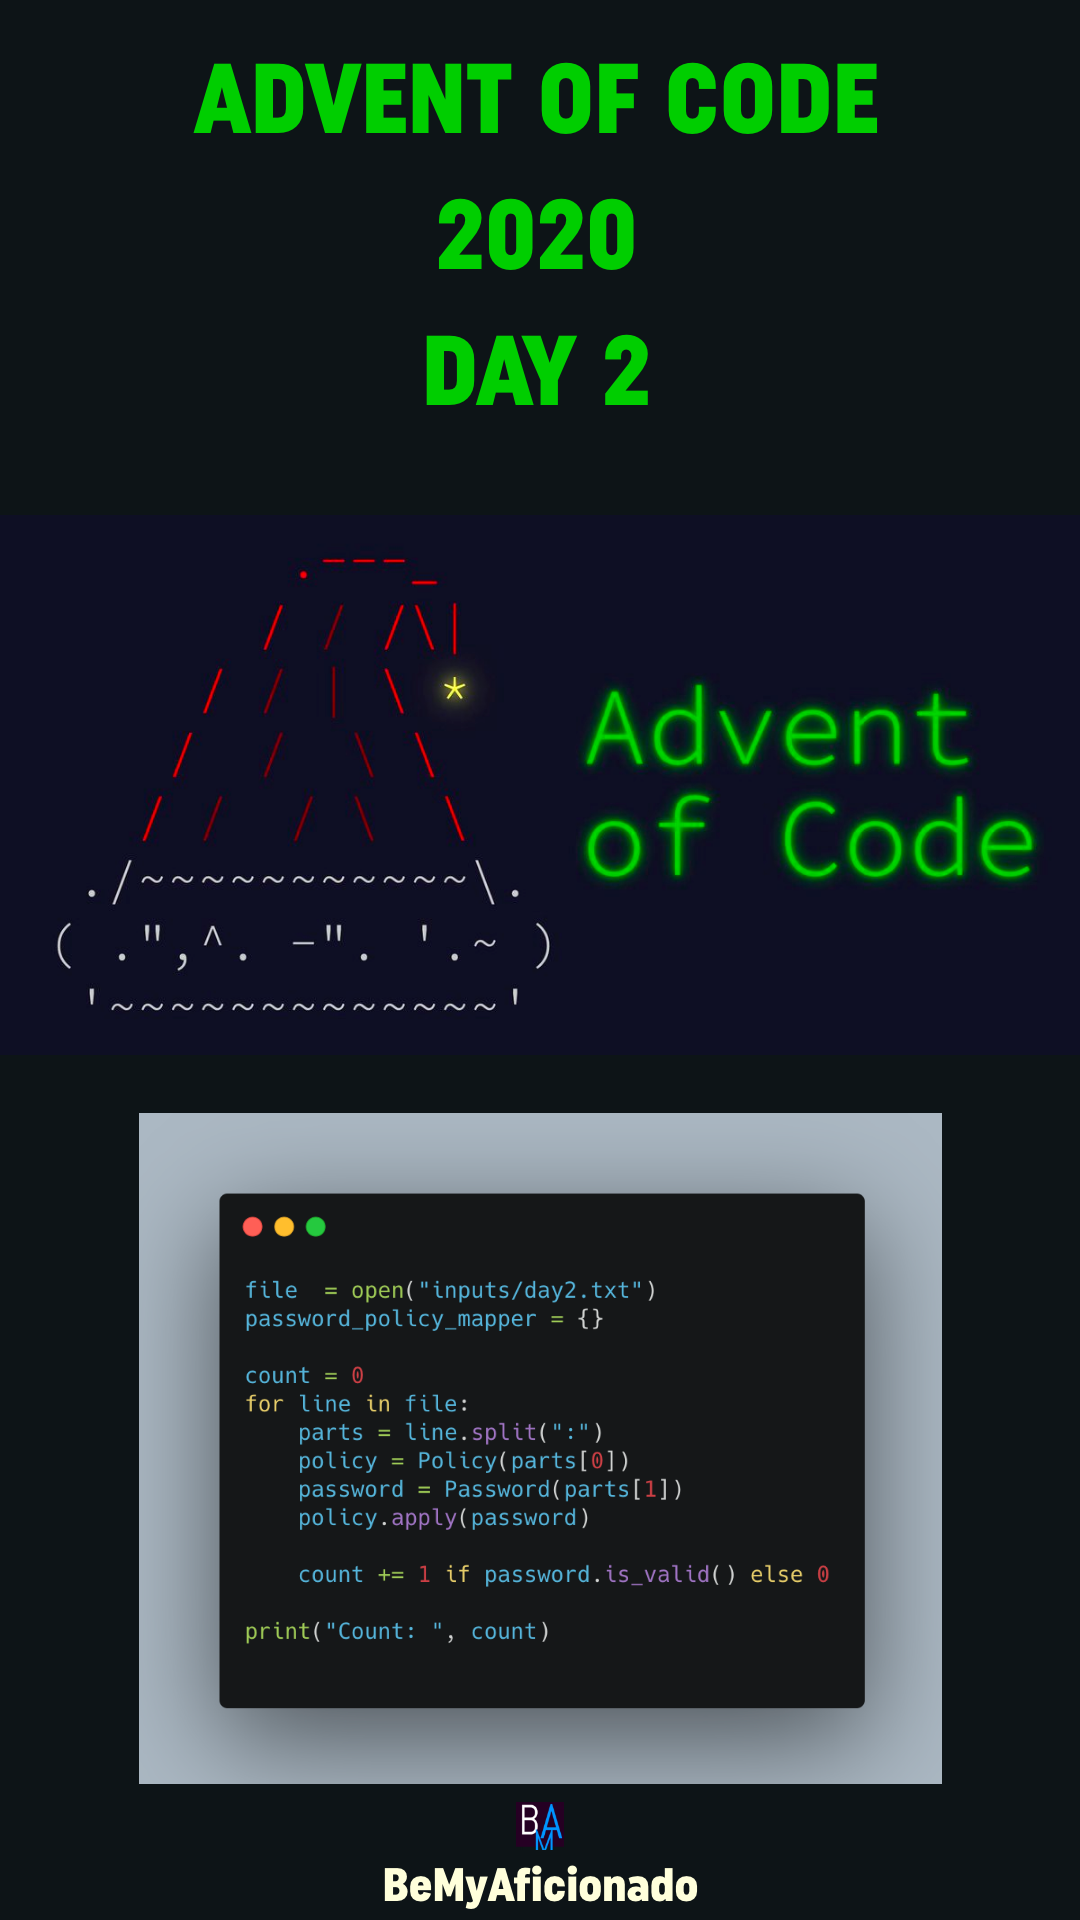 Advent of code day 2 - Password Philosophy